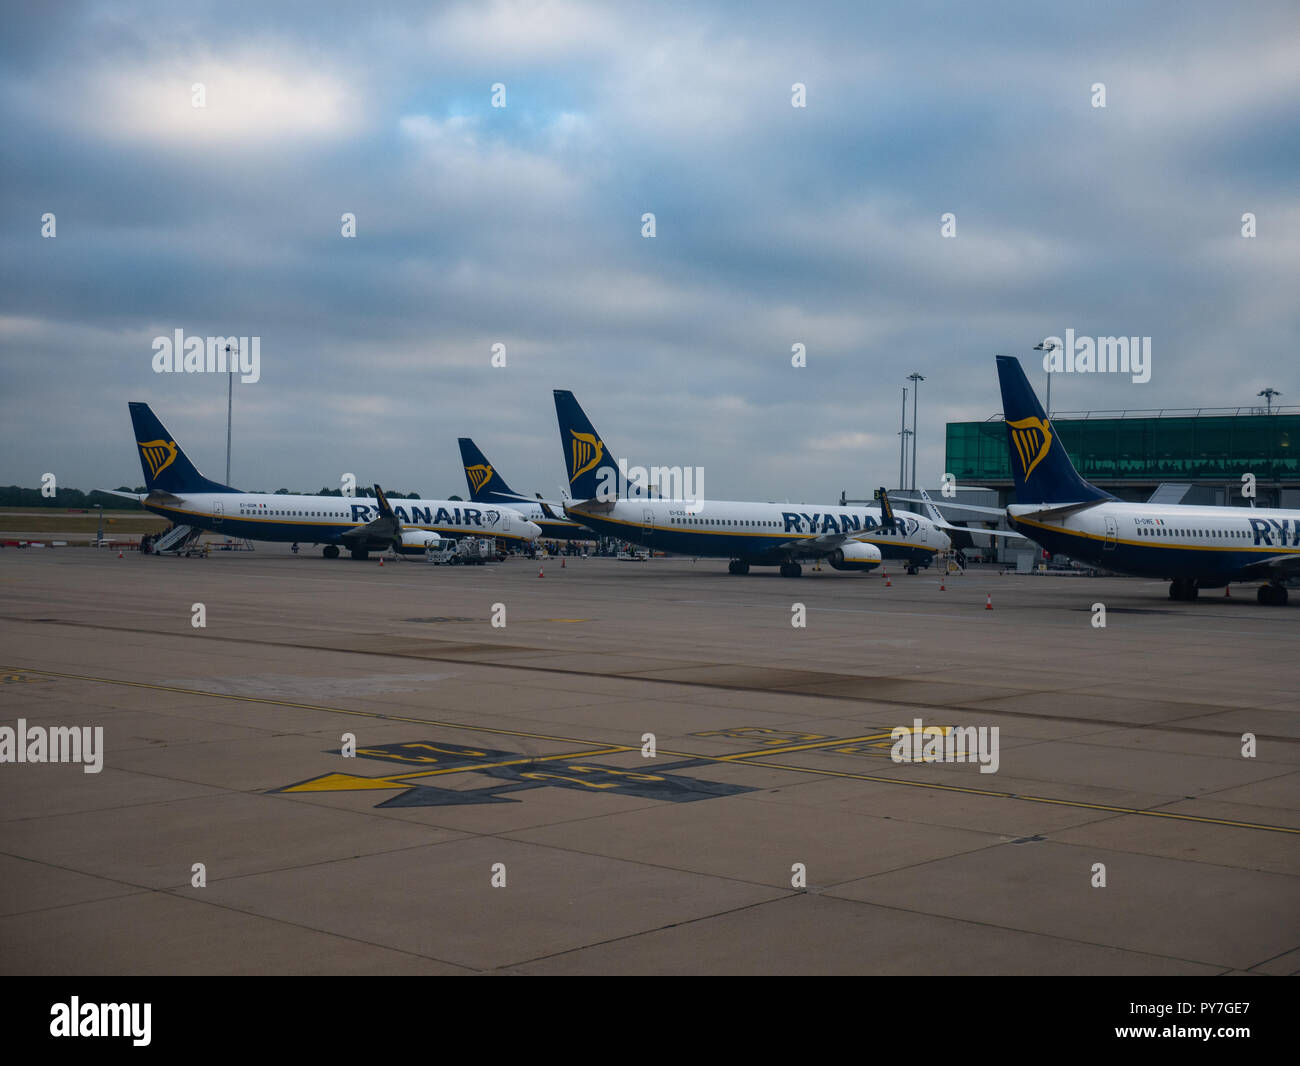 Ryanair planes parked at London Stansted Airport, Essex, England. - Stock Image